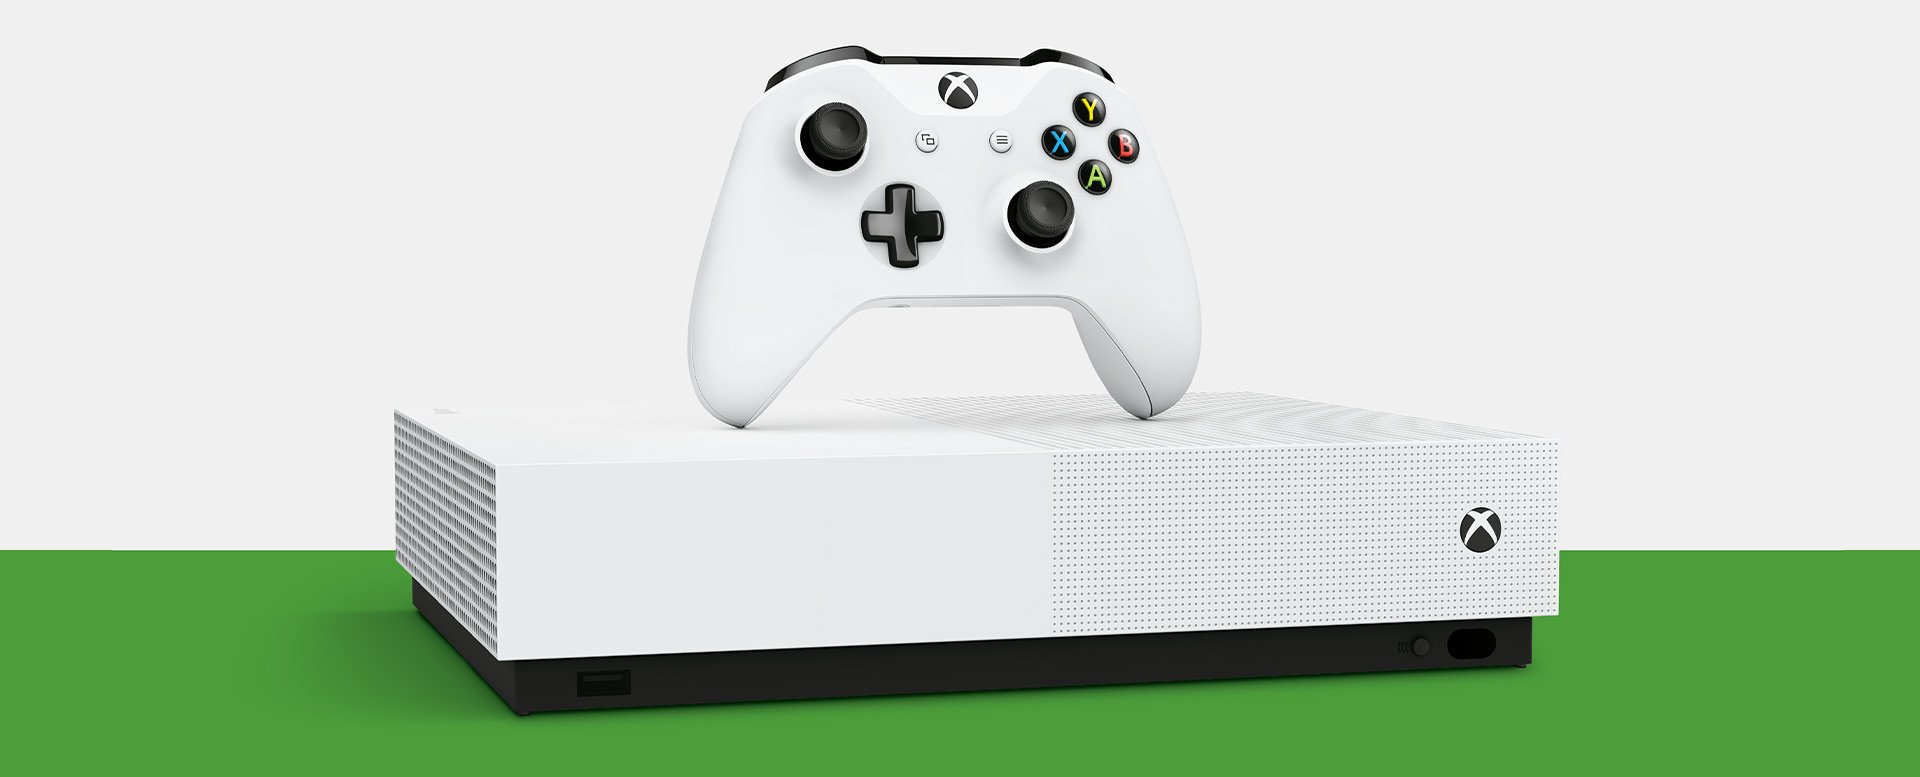 How to clear the cache on Xbox One consoles | Shacknews